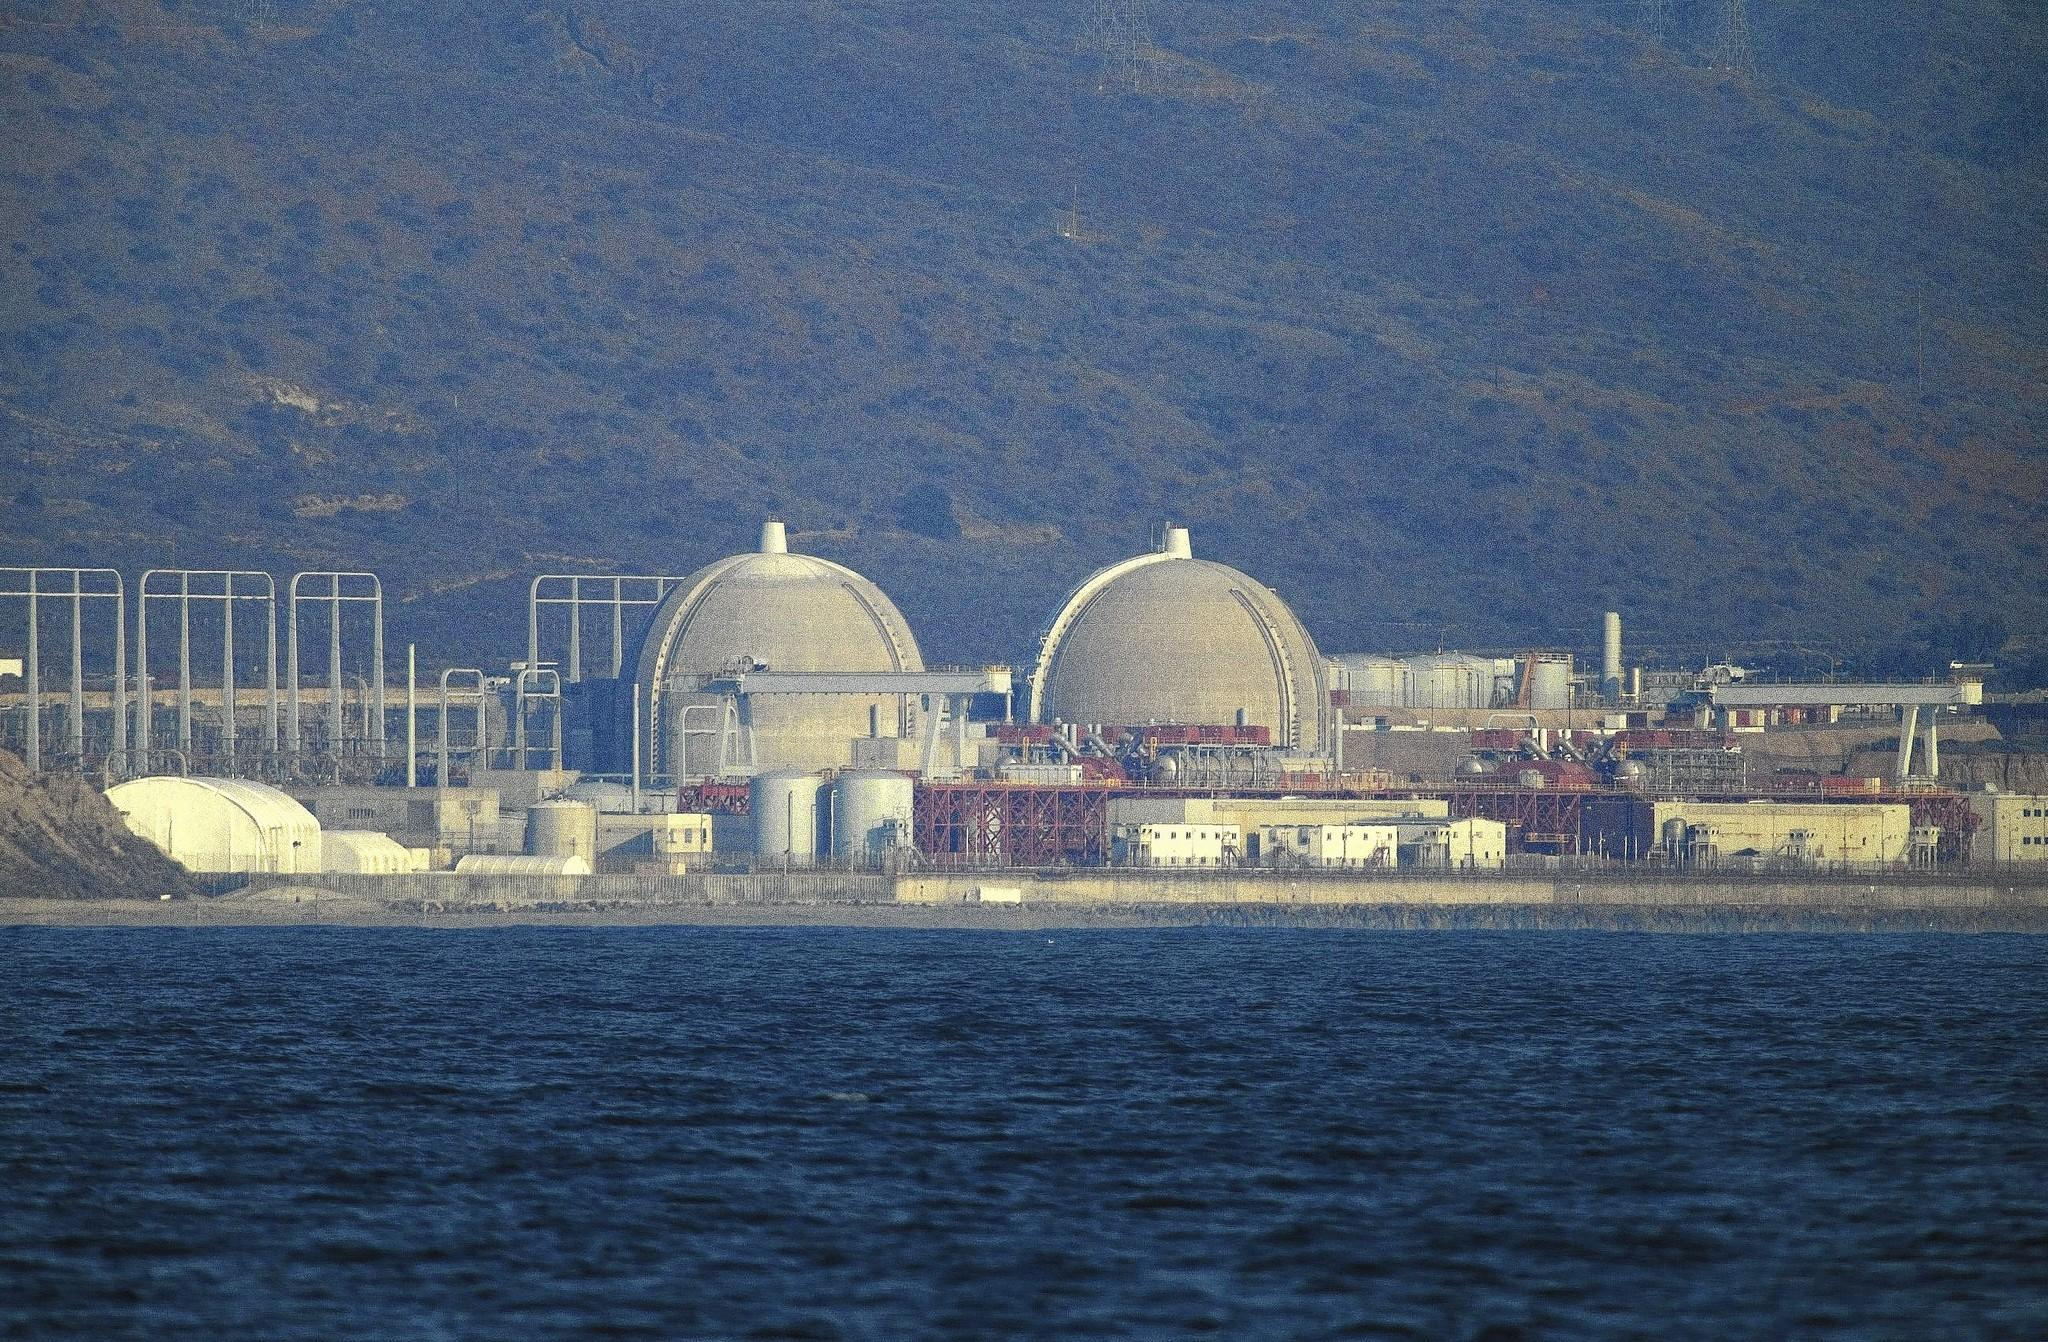 Southern California Edison has permanently retired the San Onofre nuclear power plant in San Clemente and is preparing for decommissioning.